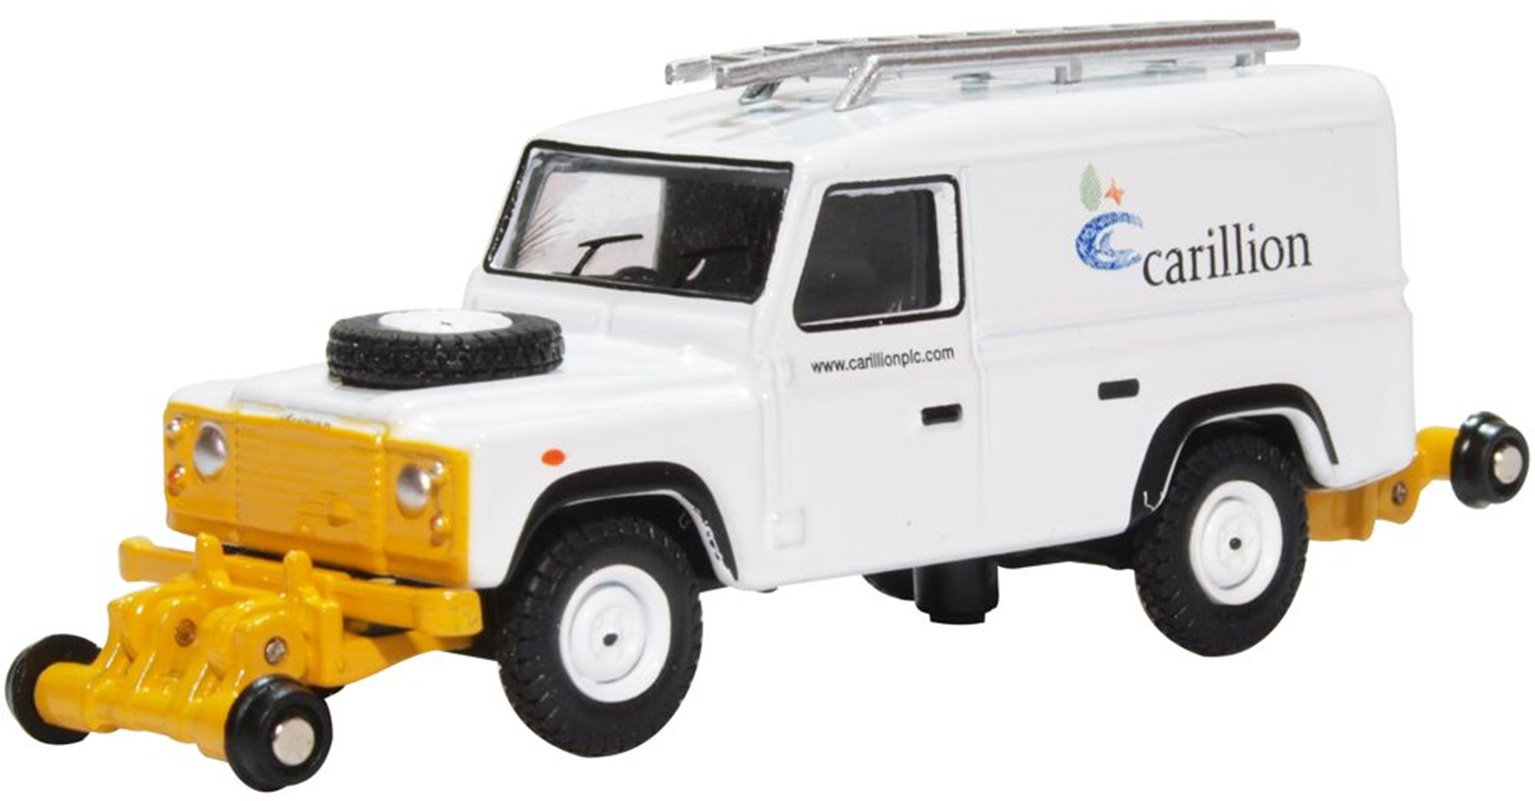 Carillion ROR defender